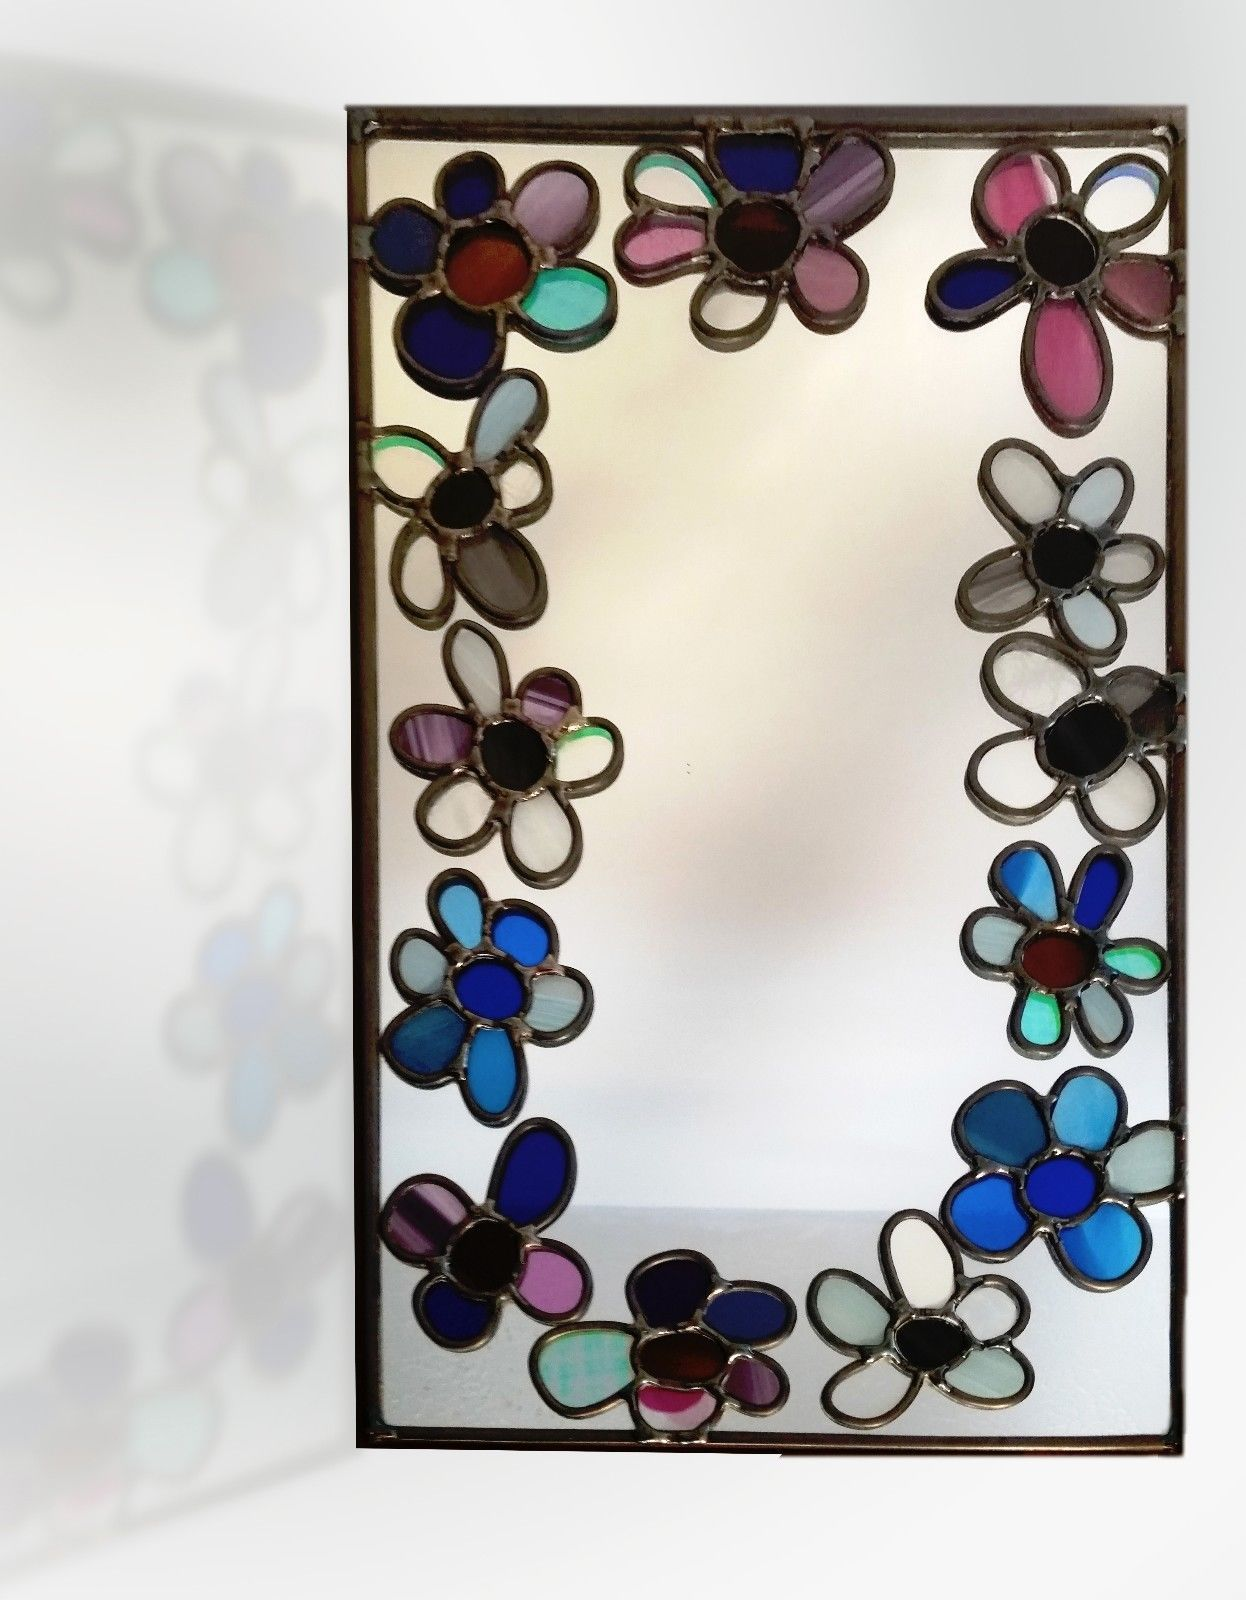 Flowers Around Design Lead Overlay Stained Glass Mirror 23 Cm X